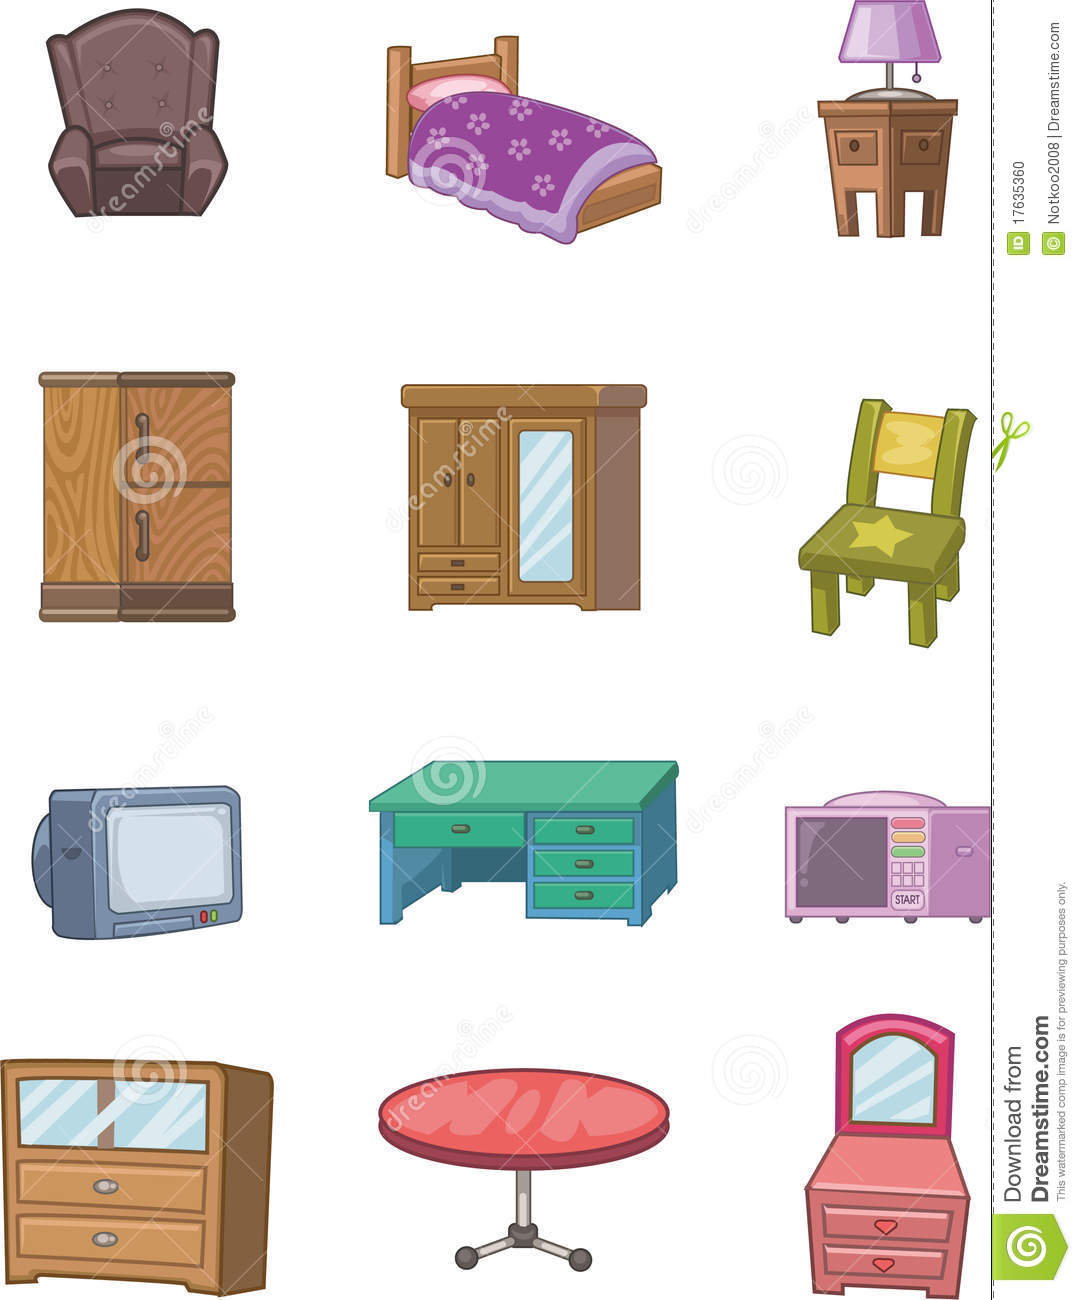 Cartoon furniture icon stock photo image 17635360 for Articulos para el hogar